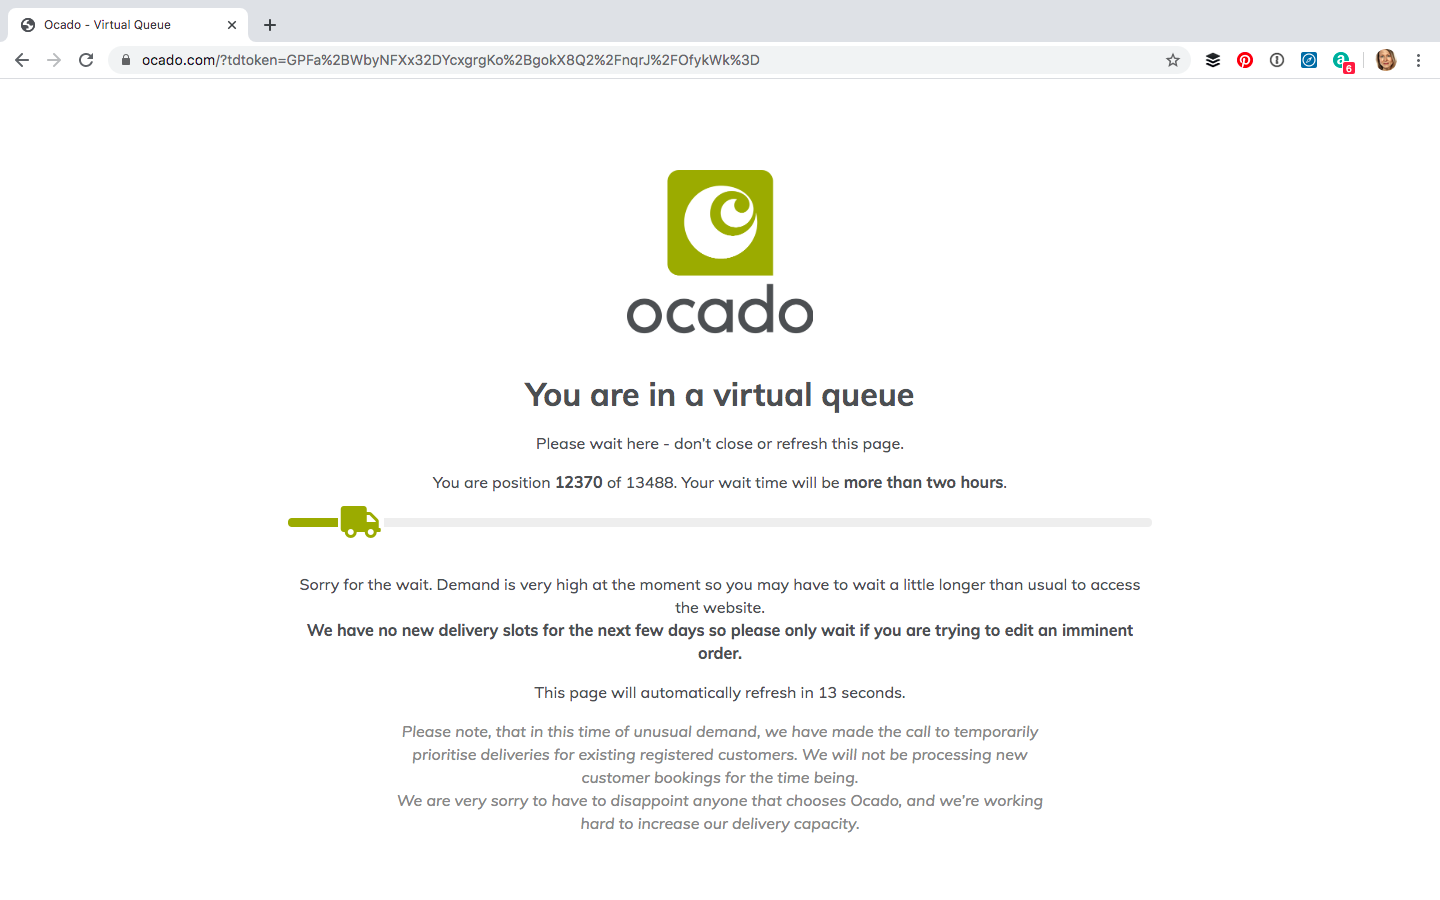 2-Ocado-website-you-are-no-12370-in-the-queue-1.png